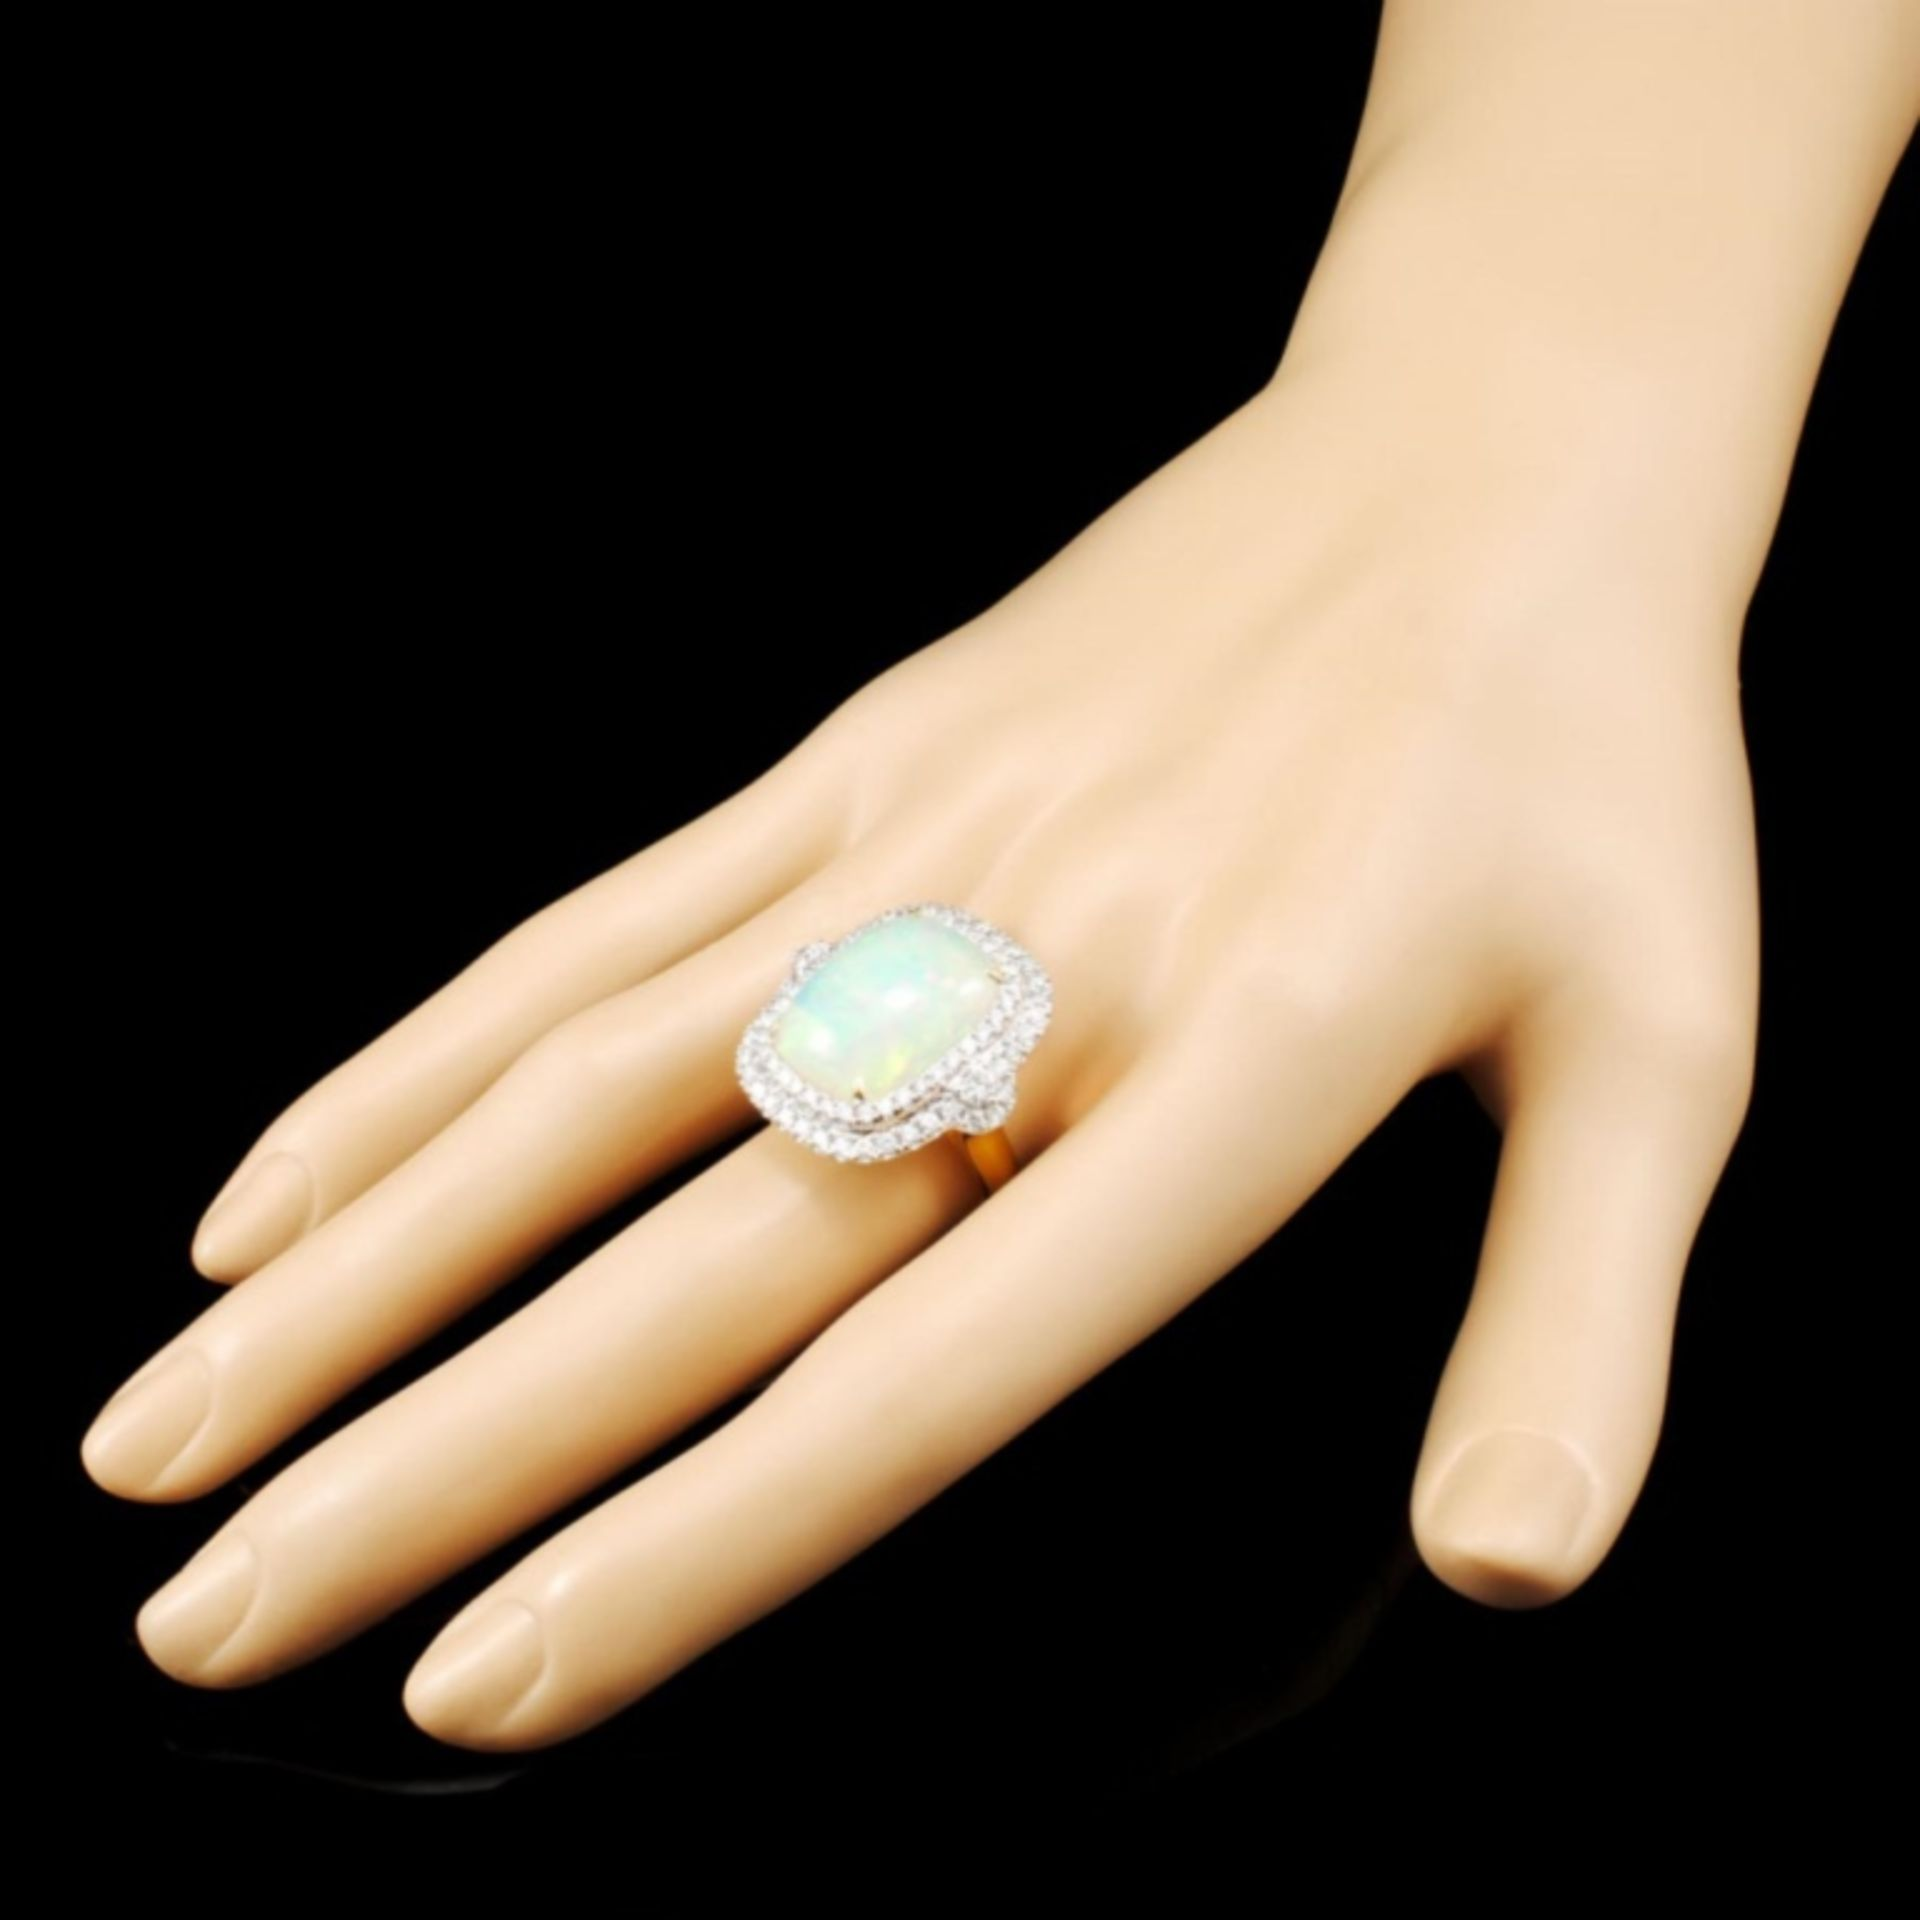 18K Gold 8.34ct Opal & 1.30ctw Diamond Ring - Image 3 of 5